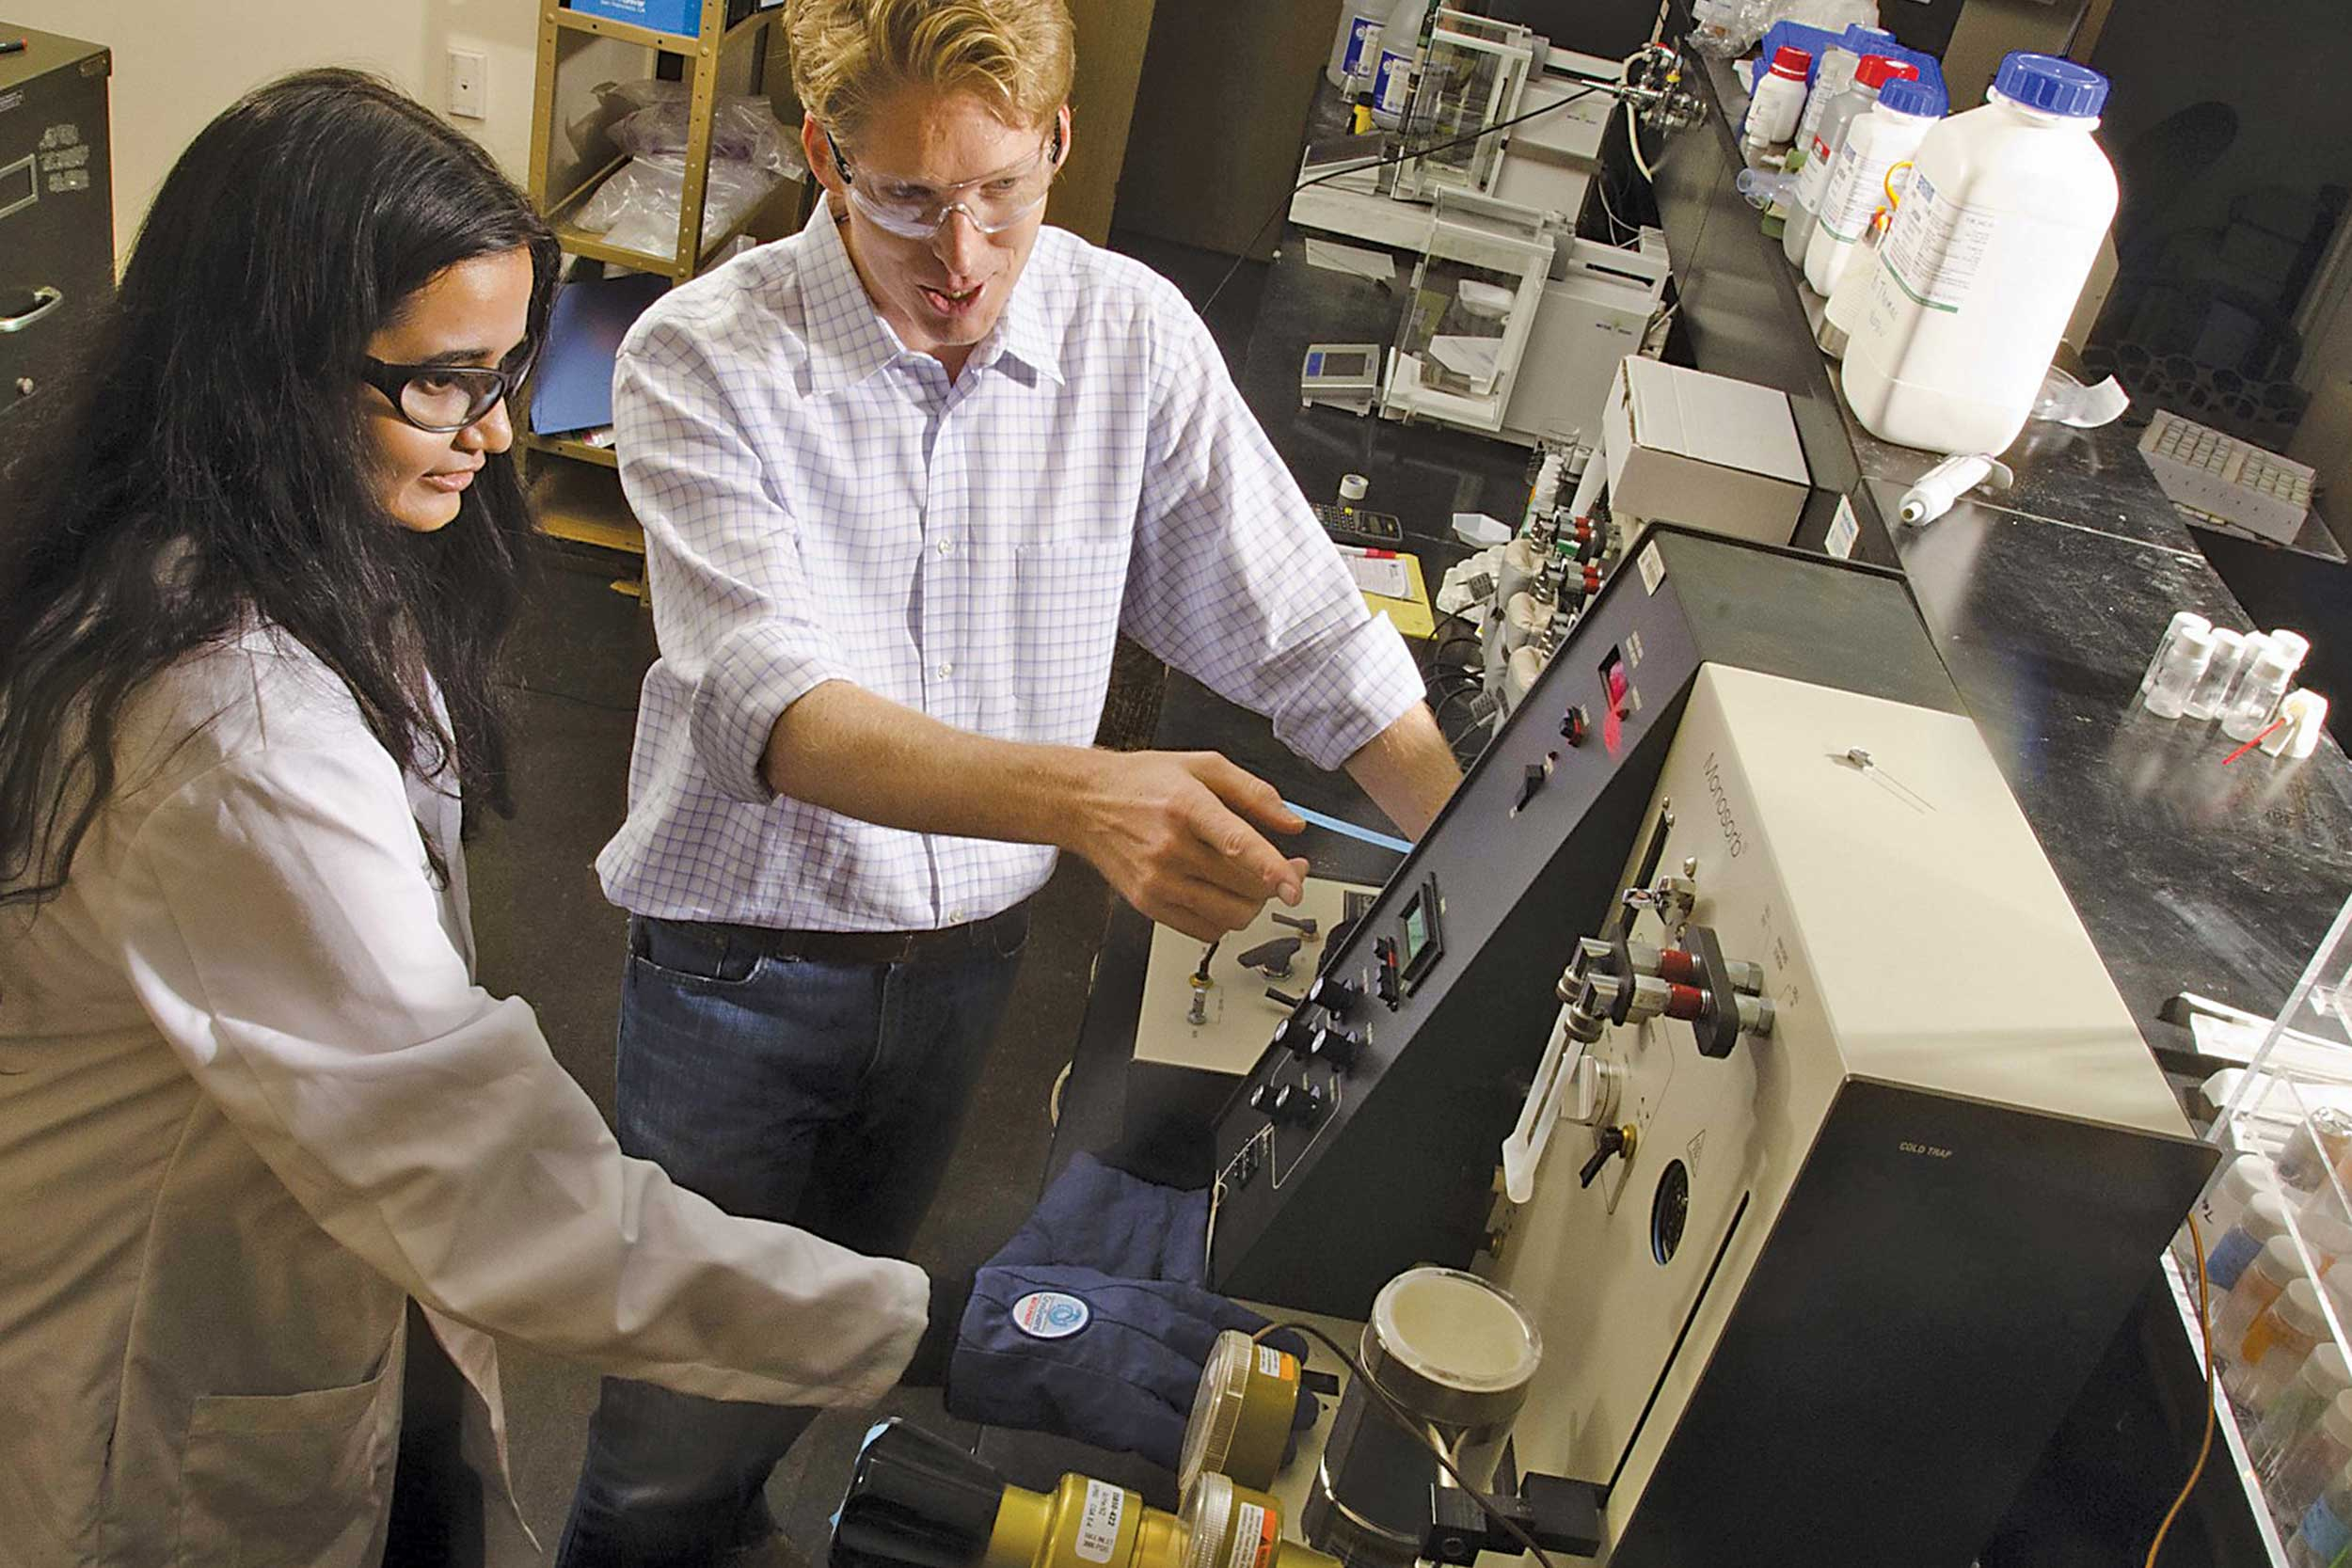 A professor assists a student with machinery in a University of Texas lab.